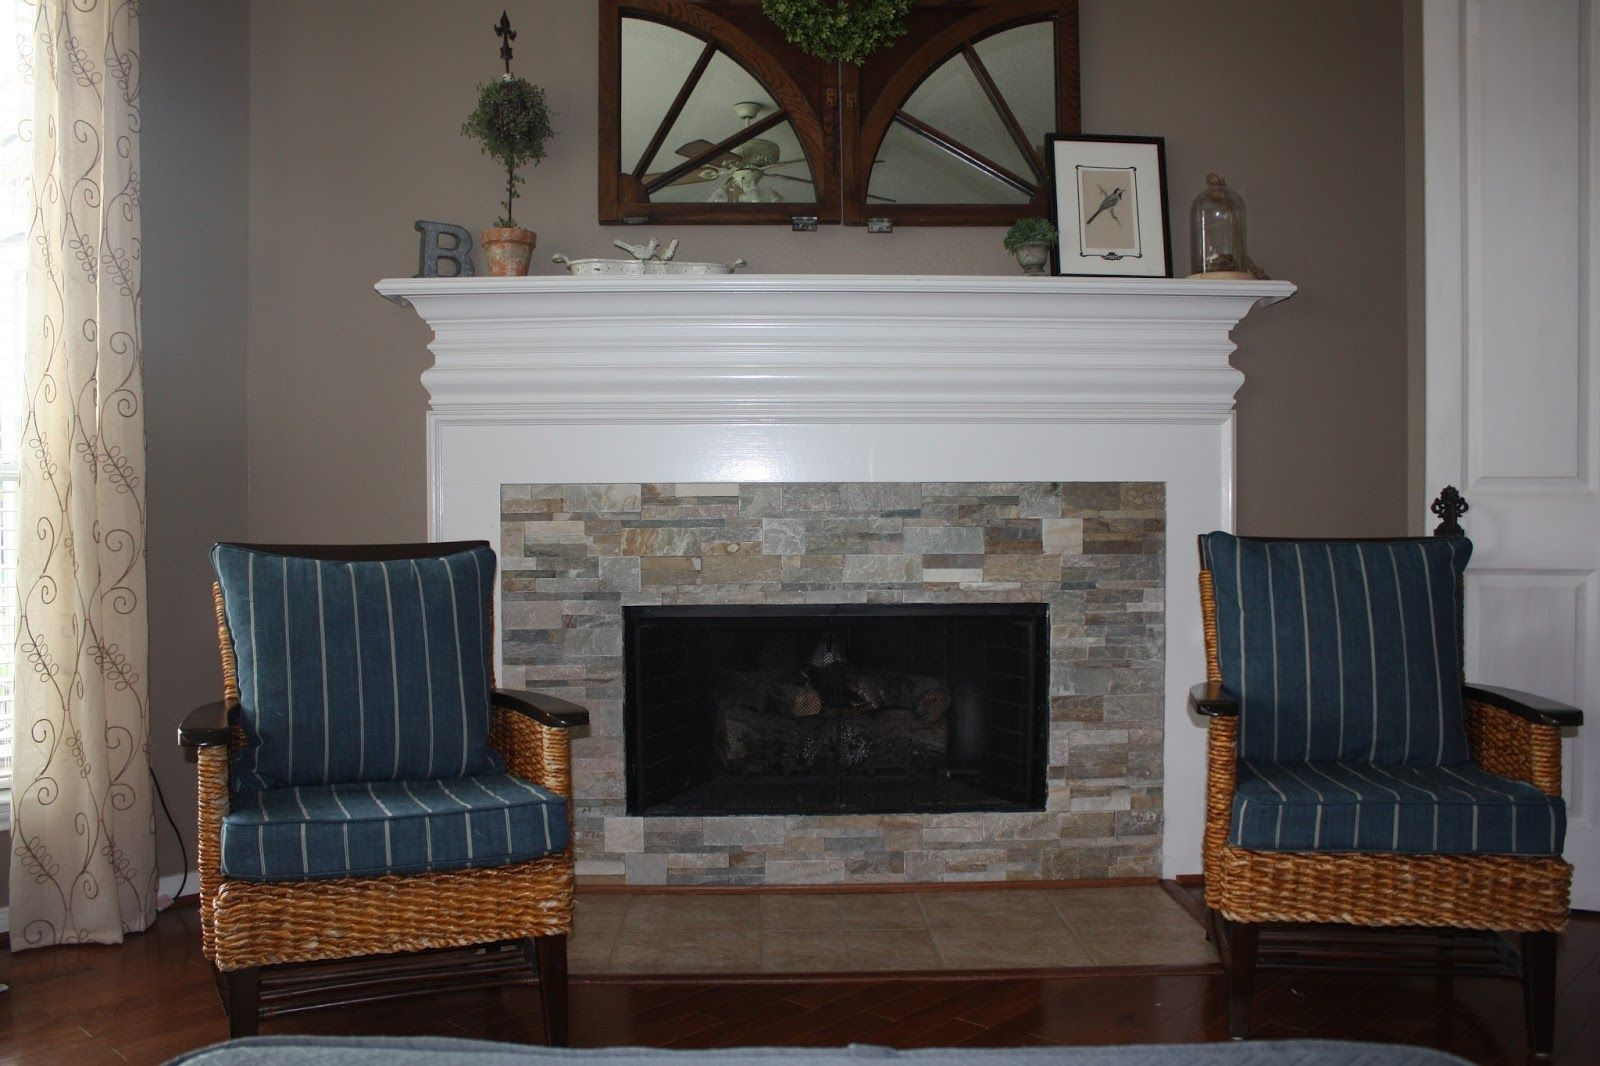 stacked stone fireplace header new stacked stone fireplace rh pinterest com stacked stone fireplace surround kits stacked stone fireplace surround kits